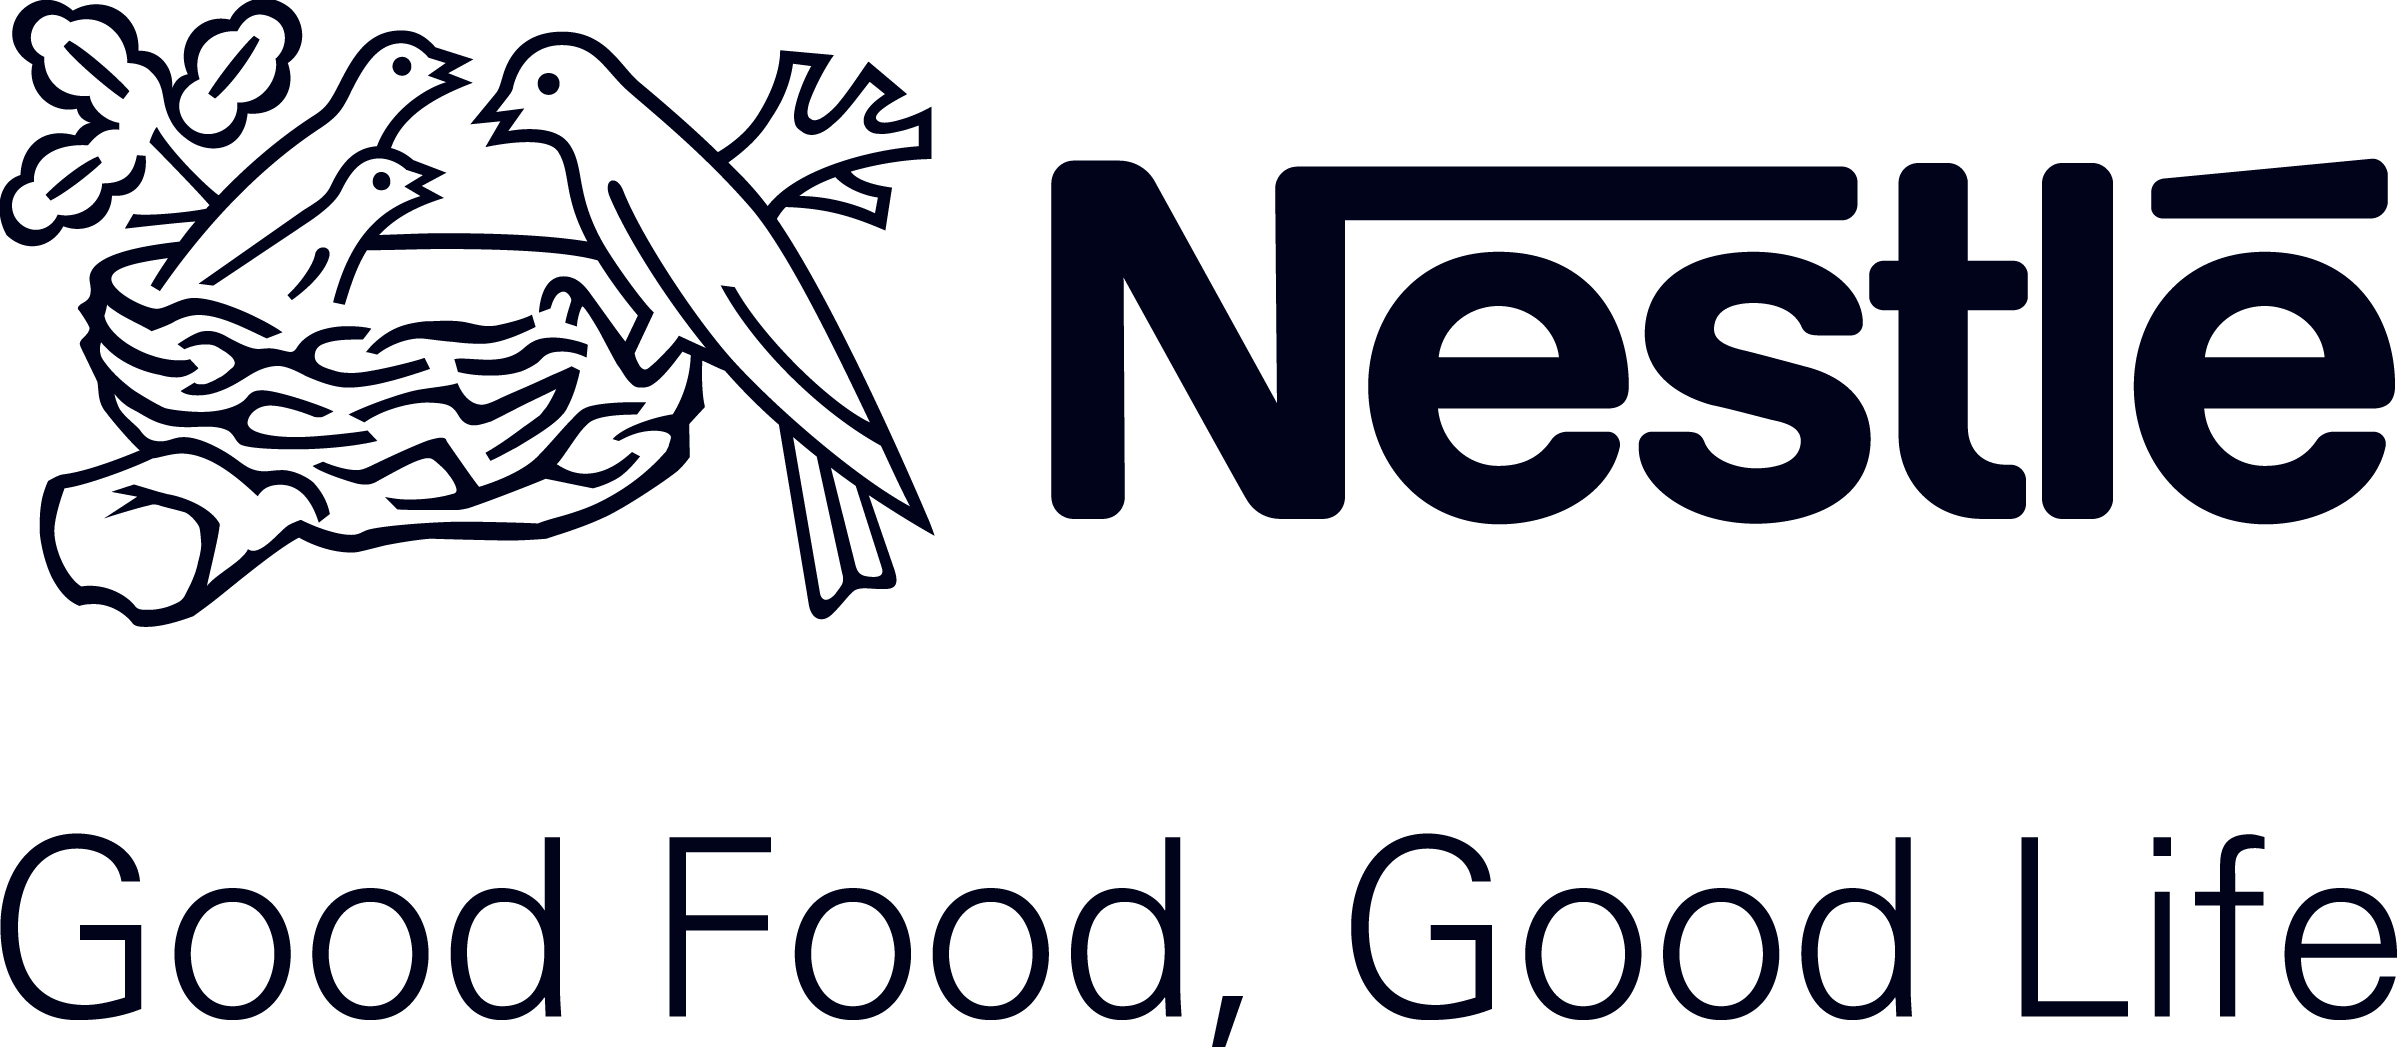 nestle marketing Corporate office nestlé india ltd nestlé house, jacaranda marg m block dlf city phase ii, national highway 8 gurgaon 122 002, india.